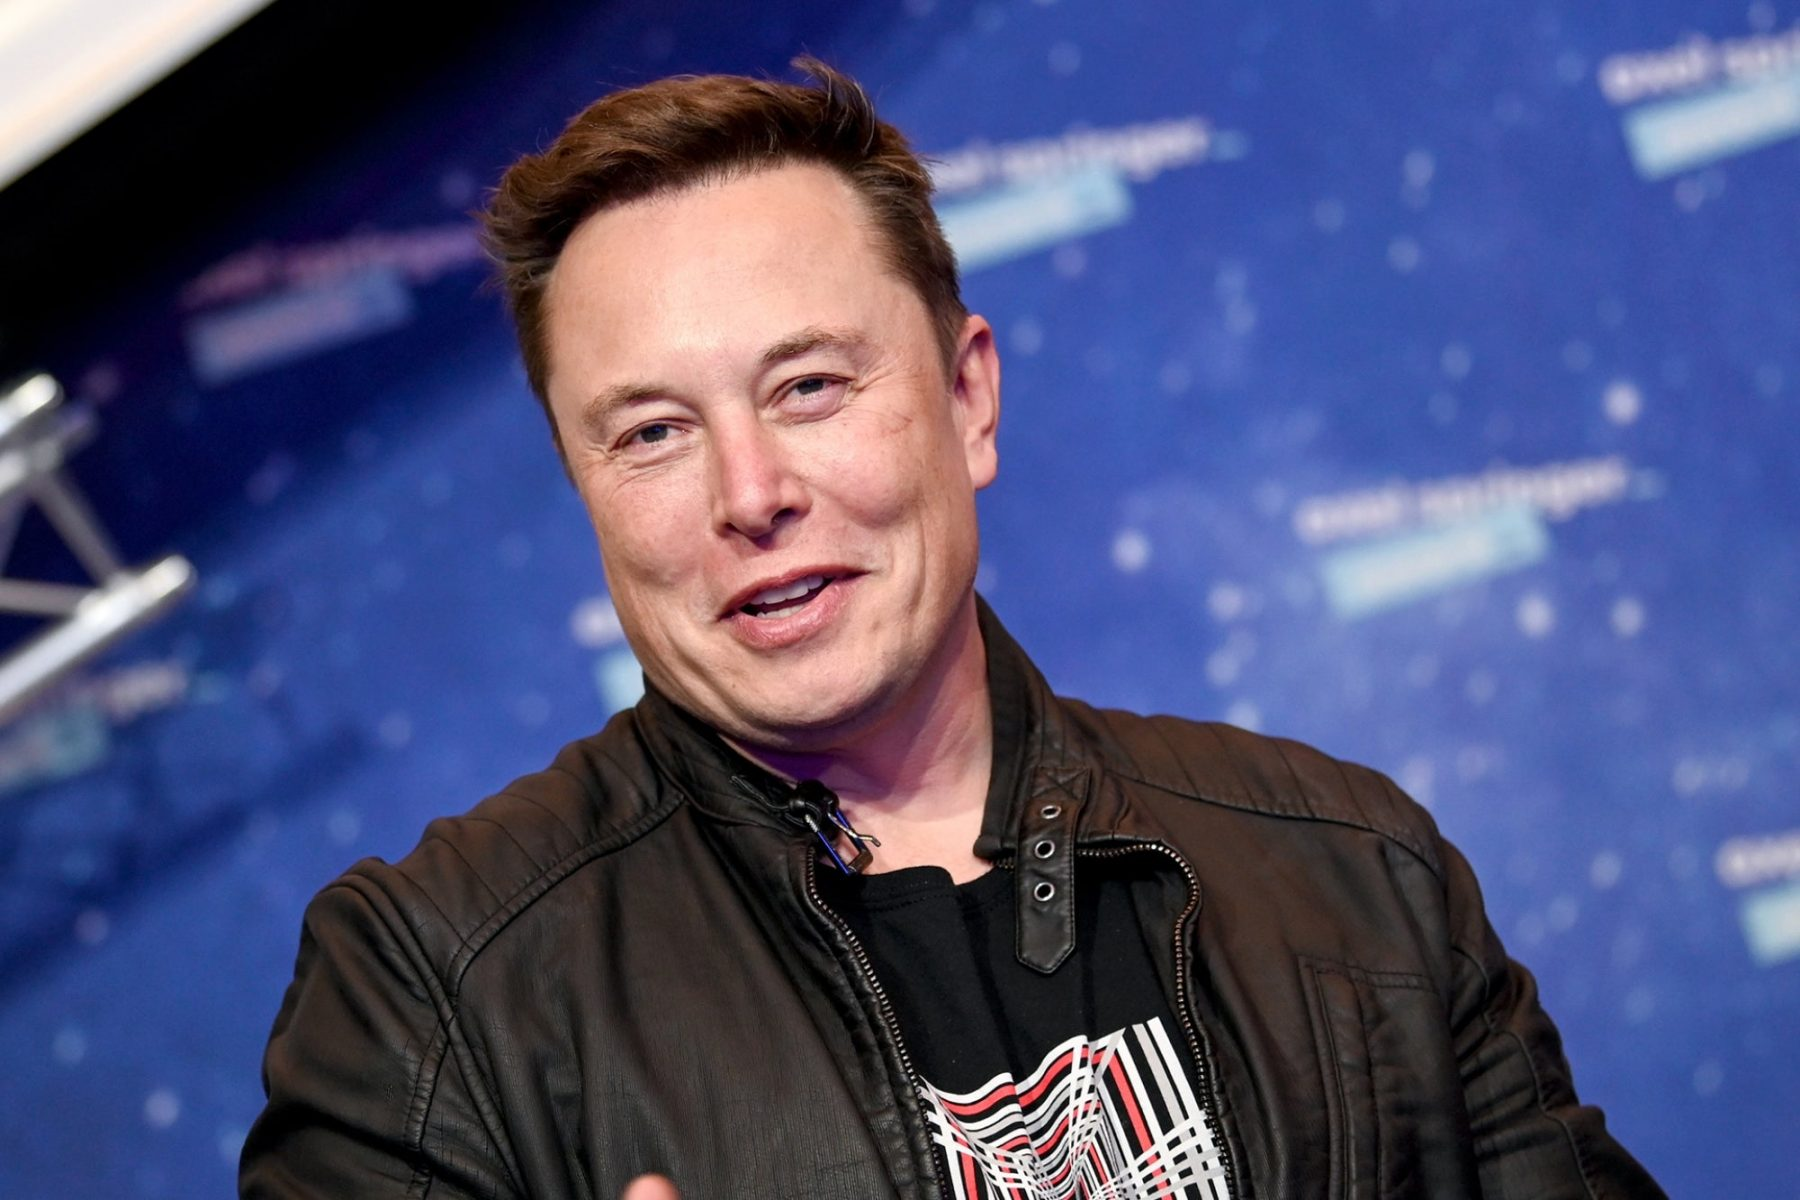 elon-musk-makes-fun-of-bezos-on-twitter,-purposely-spells-his-name-wrong